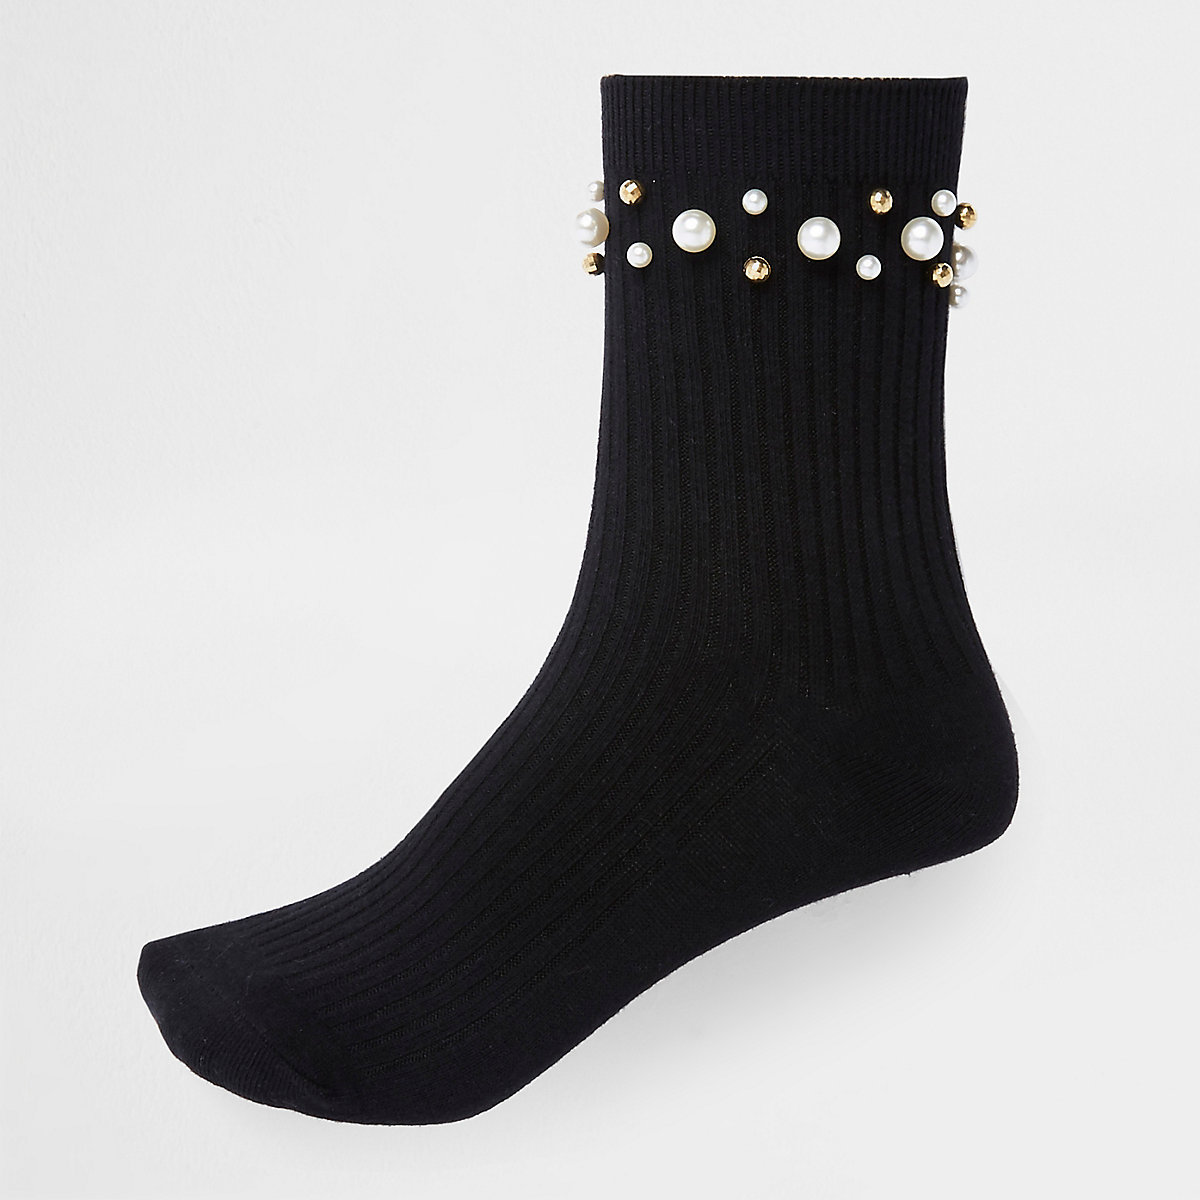 Black pearl trim ankle socks